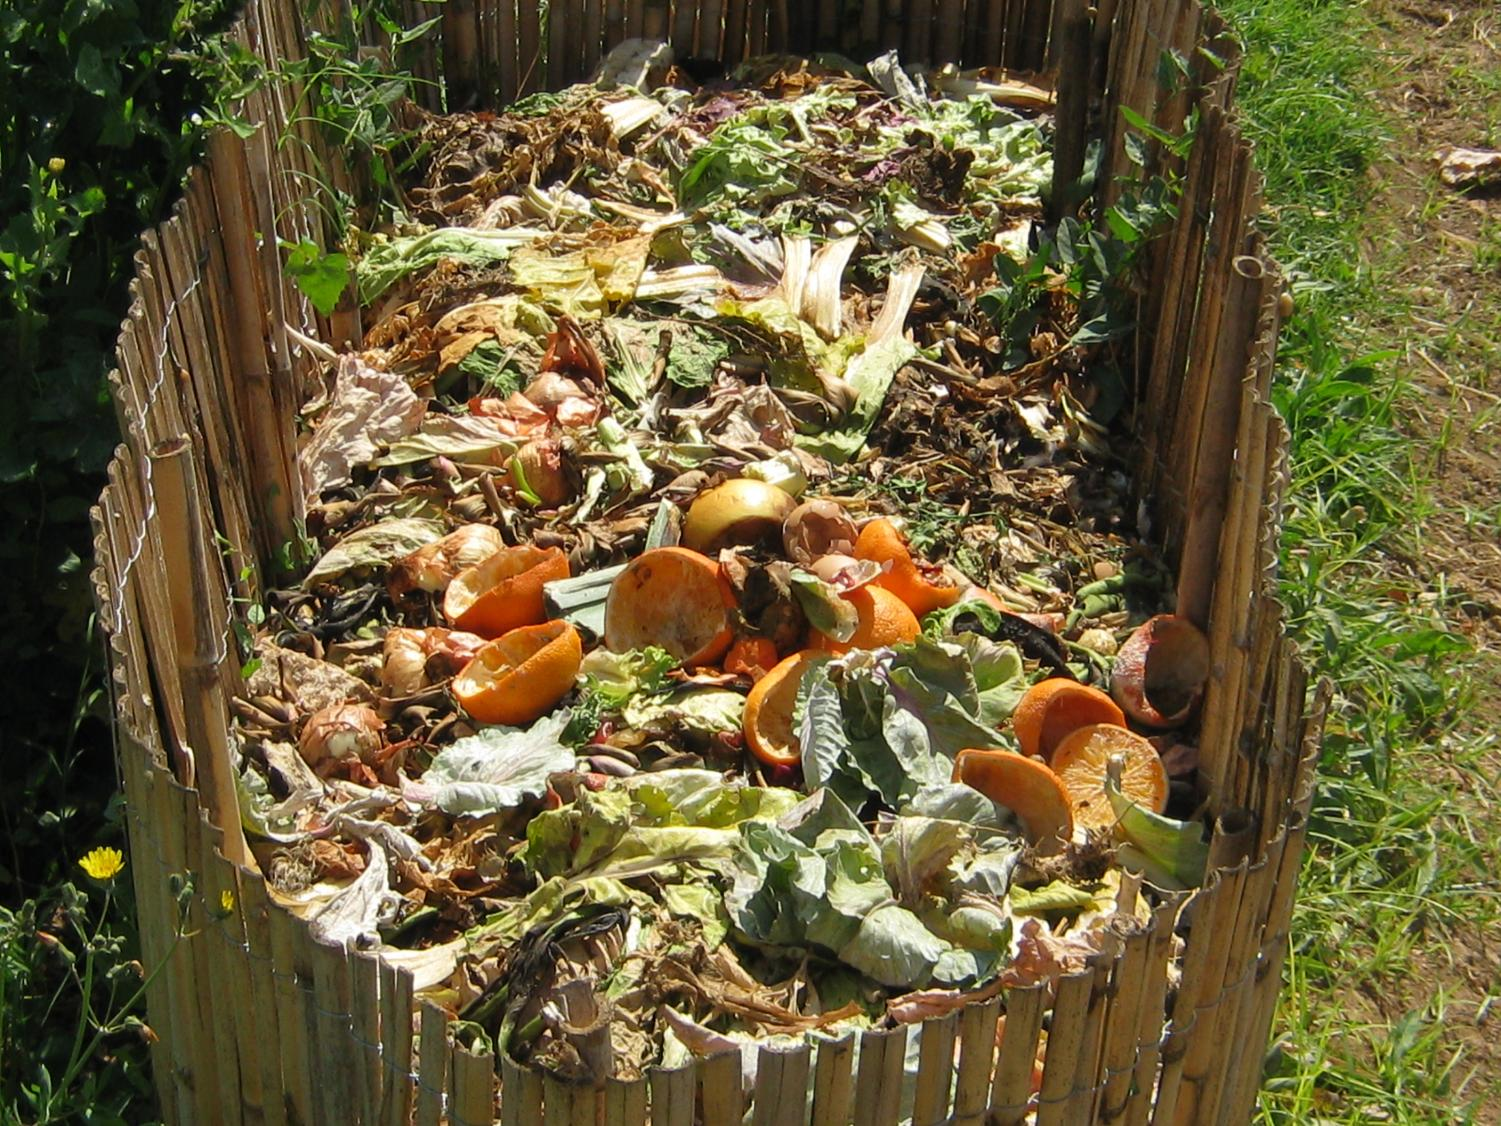 Compost with a mixture of organic material.